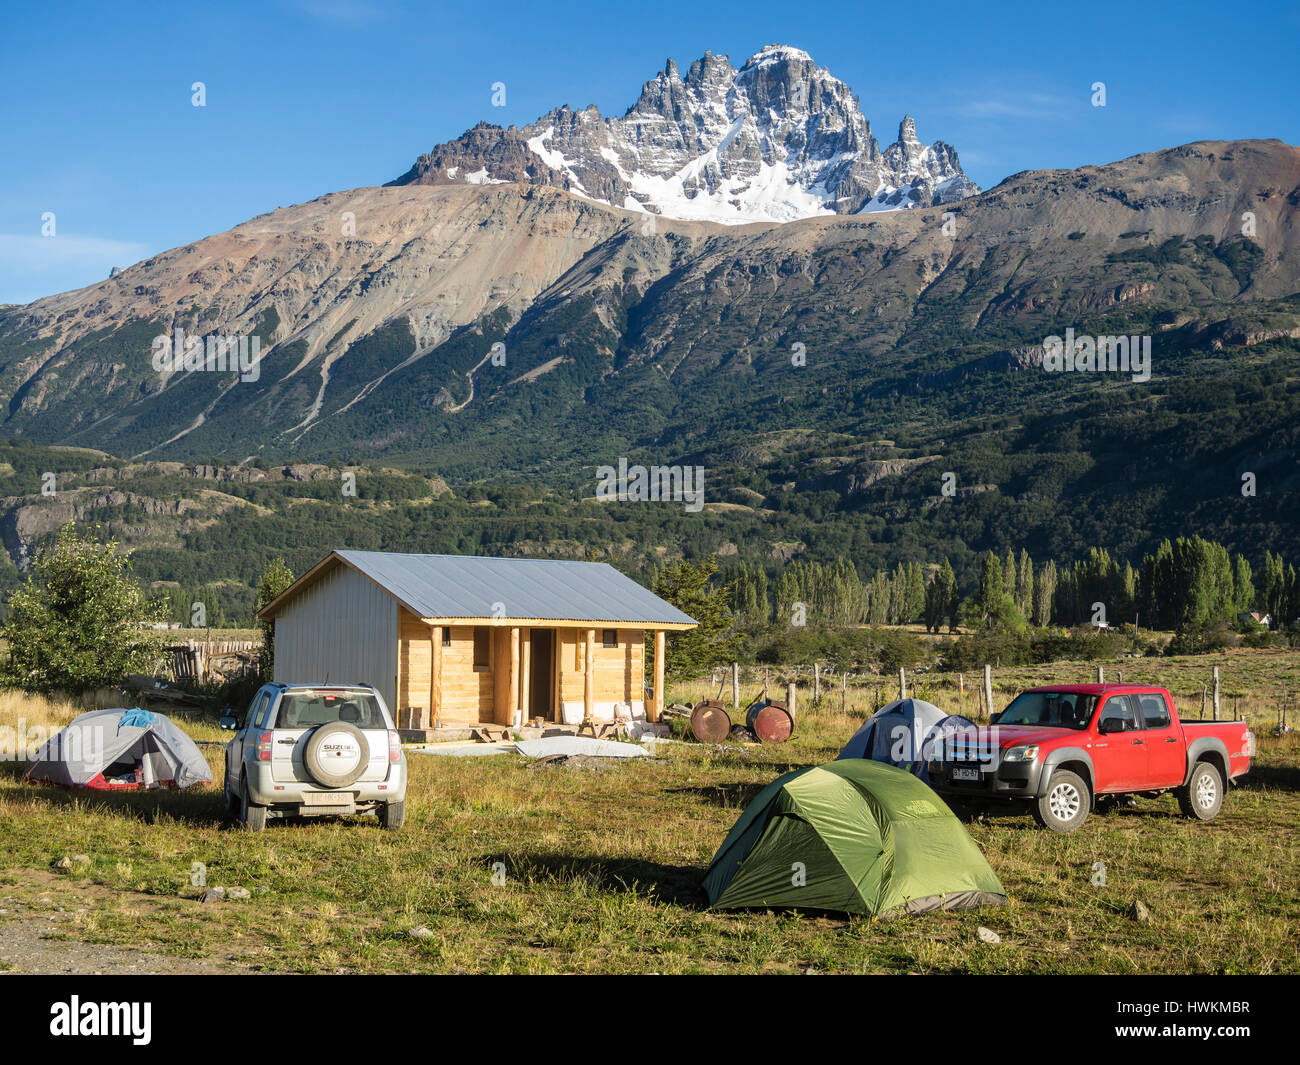 Tents on campsite in village Villa Cerro Castillo , mountain Cerro Castillo in the backg, Aysen region, Patagonia, - Stock Image